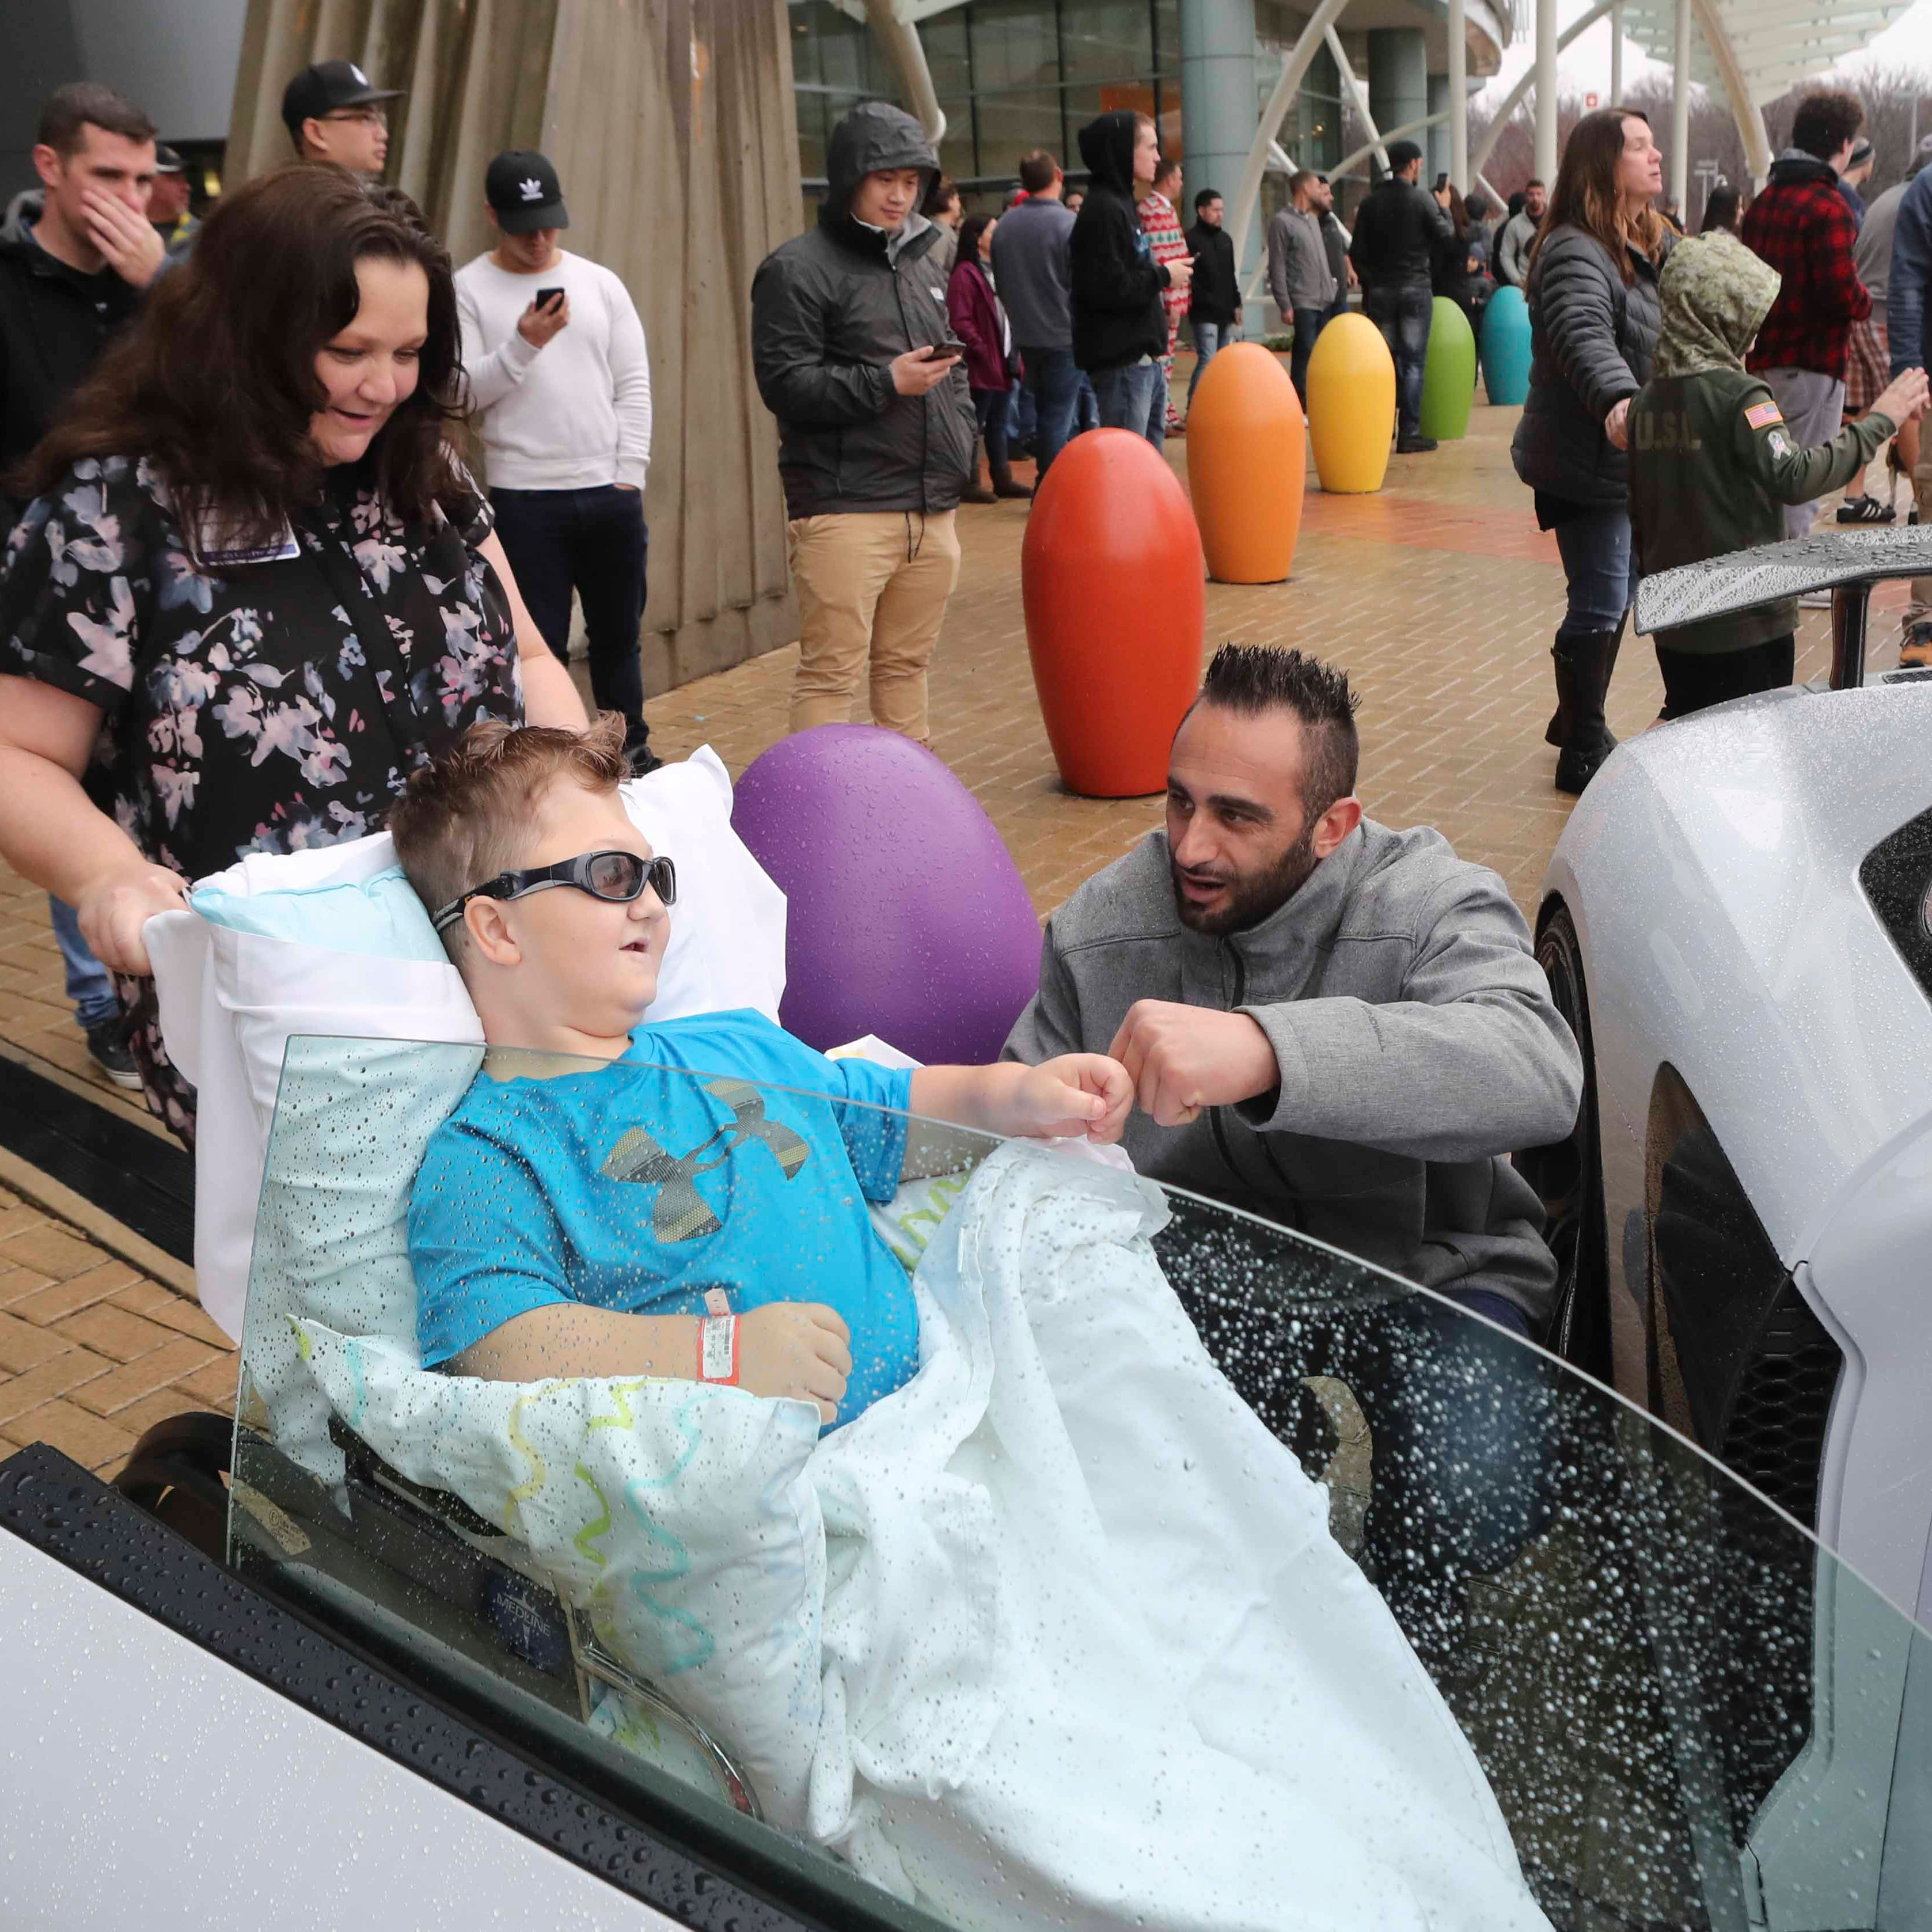 Car clubs drive to Nemours/A.I. duPont Hospital for Children for a Christmastime treat